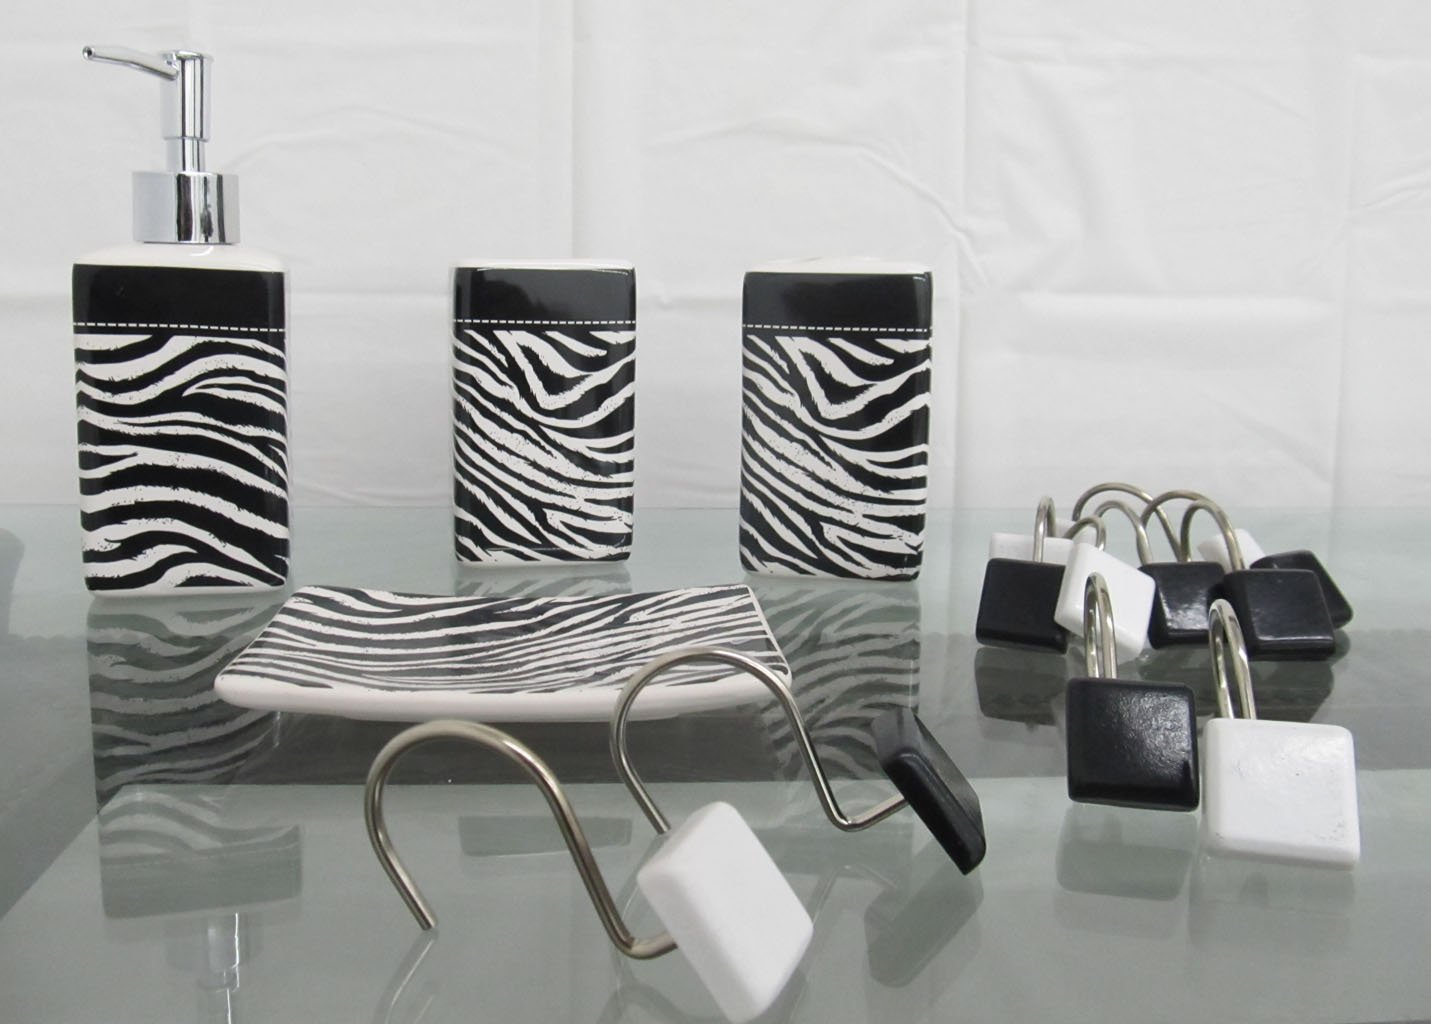 Zebra bathroom sets shower accessories zebra for Zebra bathroom accessories